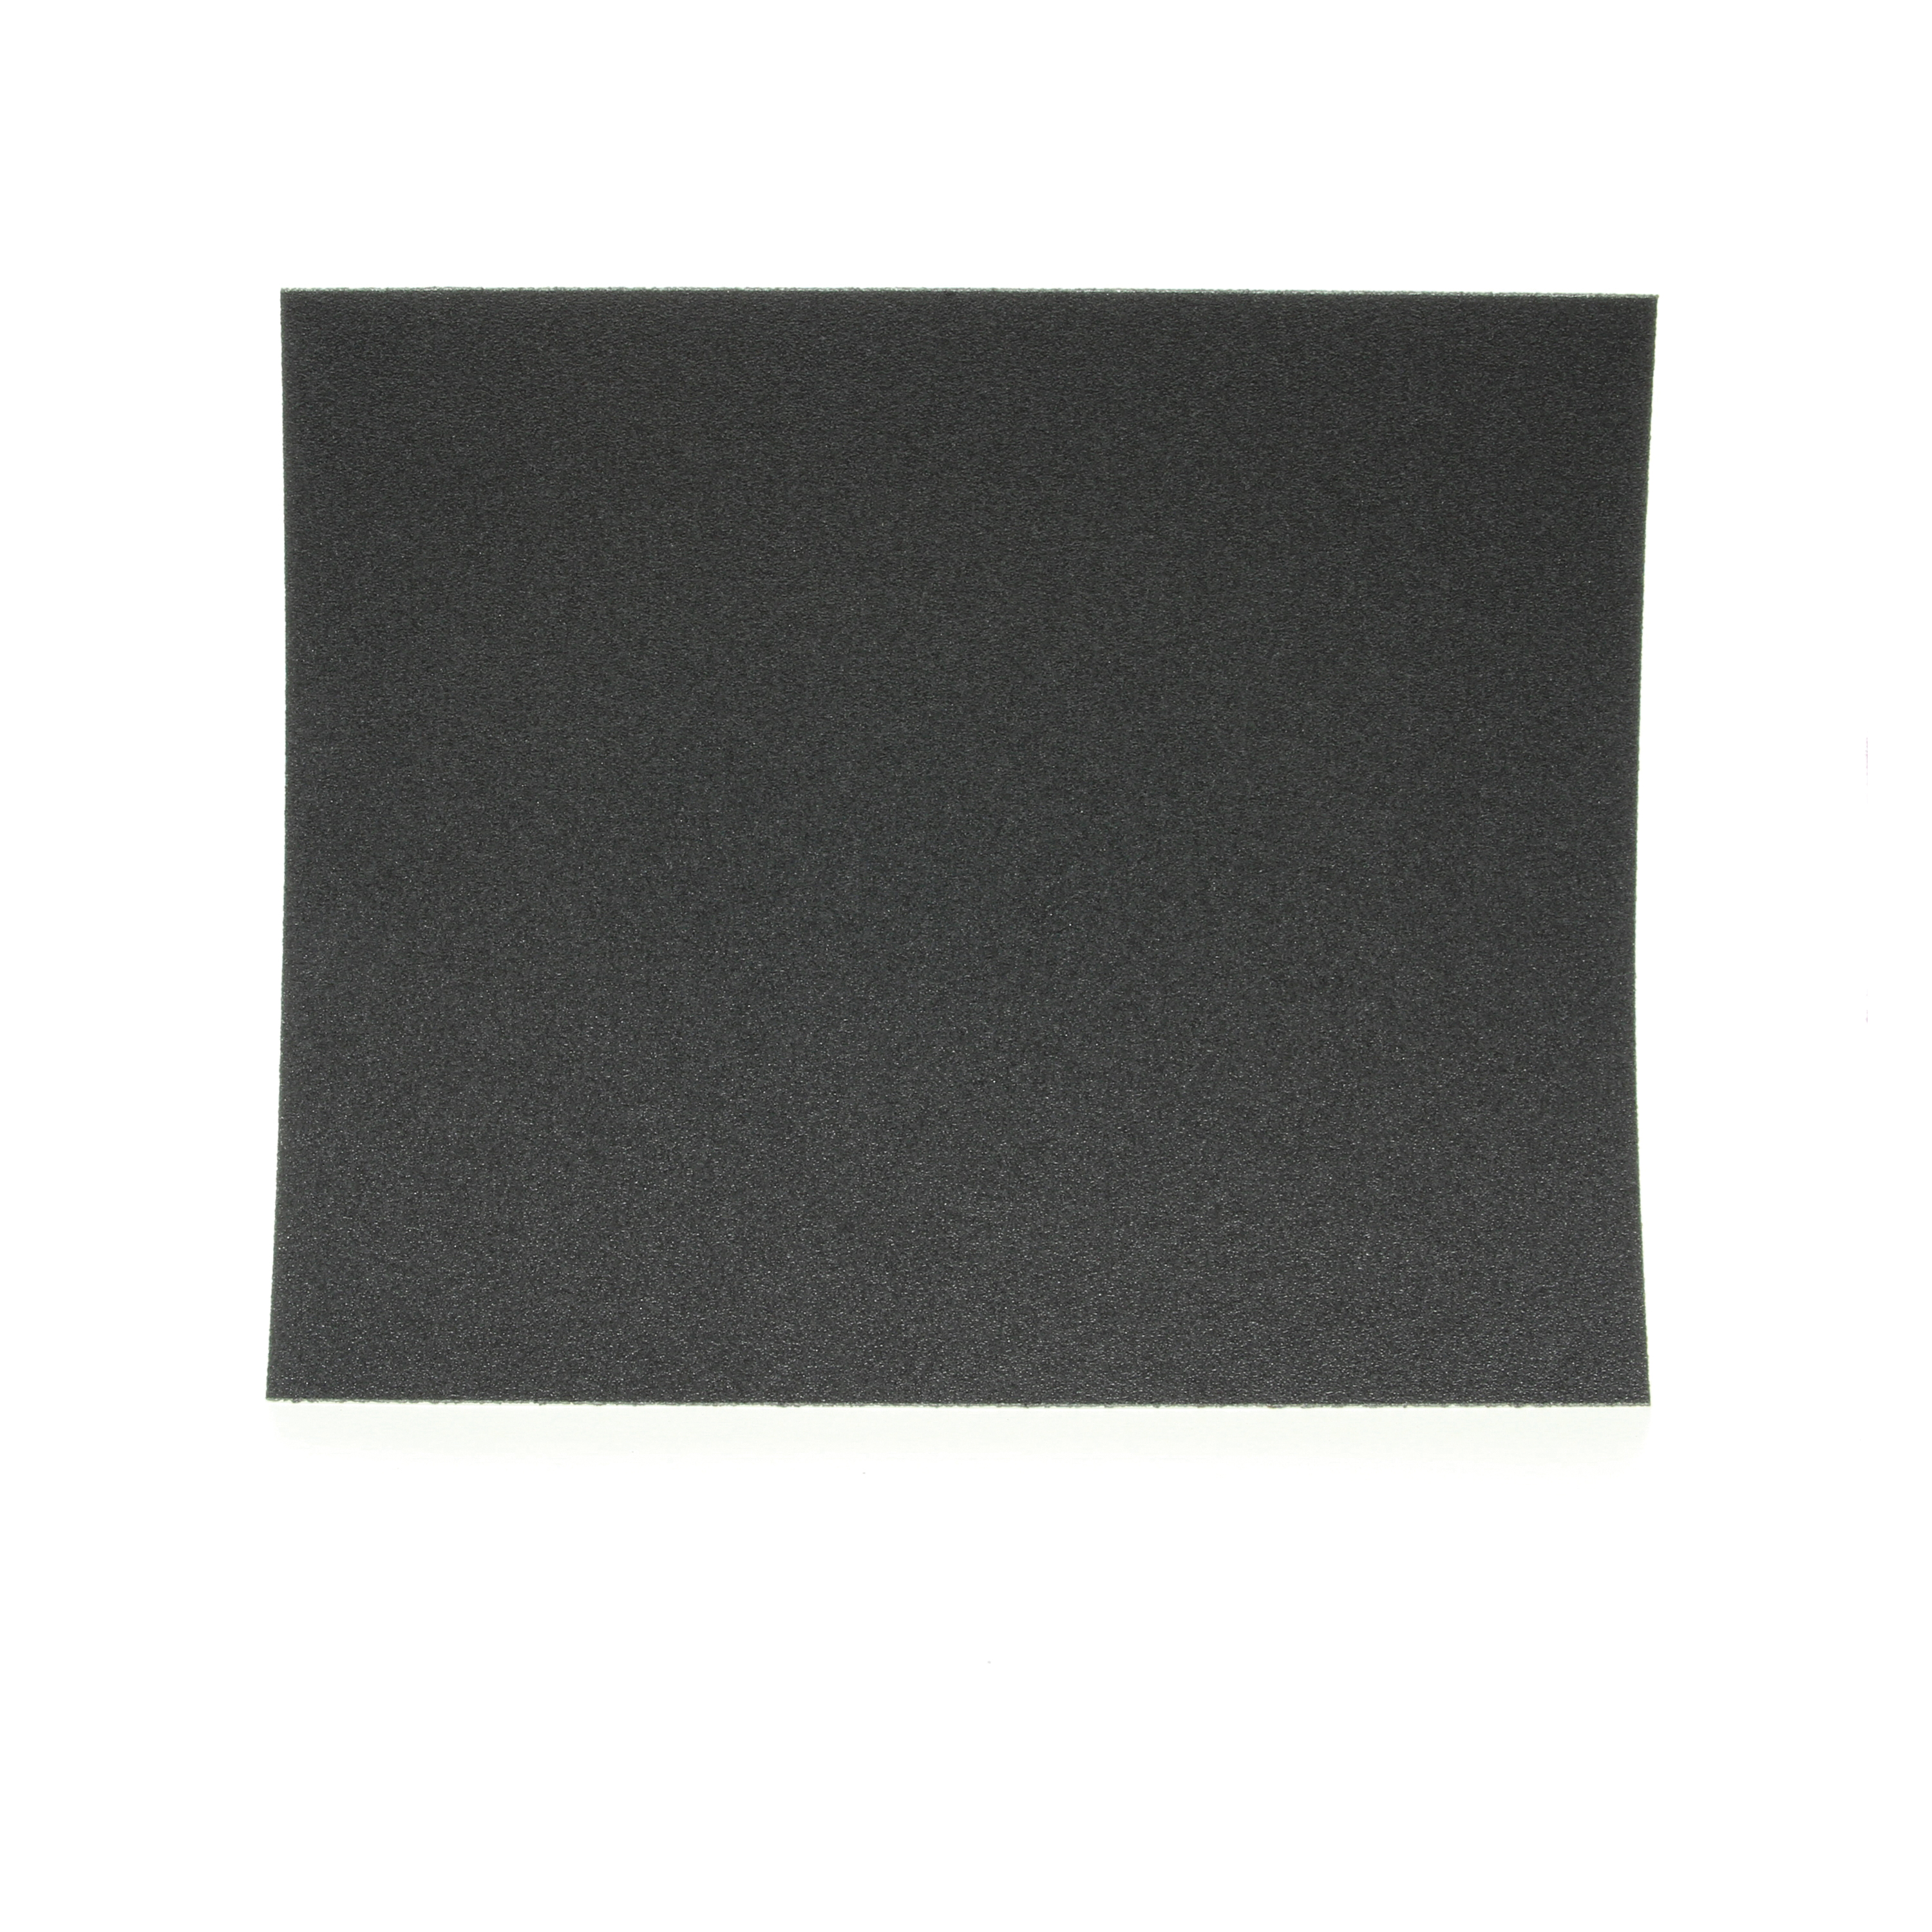 3M™ Wetordry™ 051144-02017 431Q Coated Sanding Sheet, 11 in L x 9 in W, 100 Grit, Fine Grade, Silicon Carbide Abrasive, Paper Backing